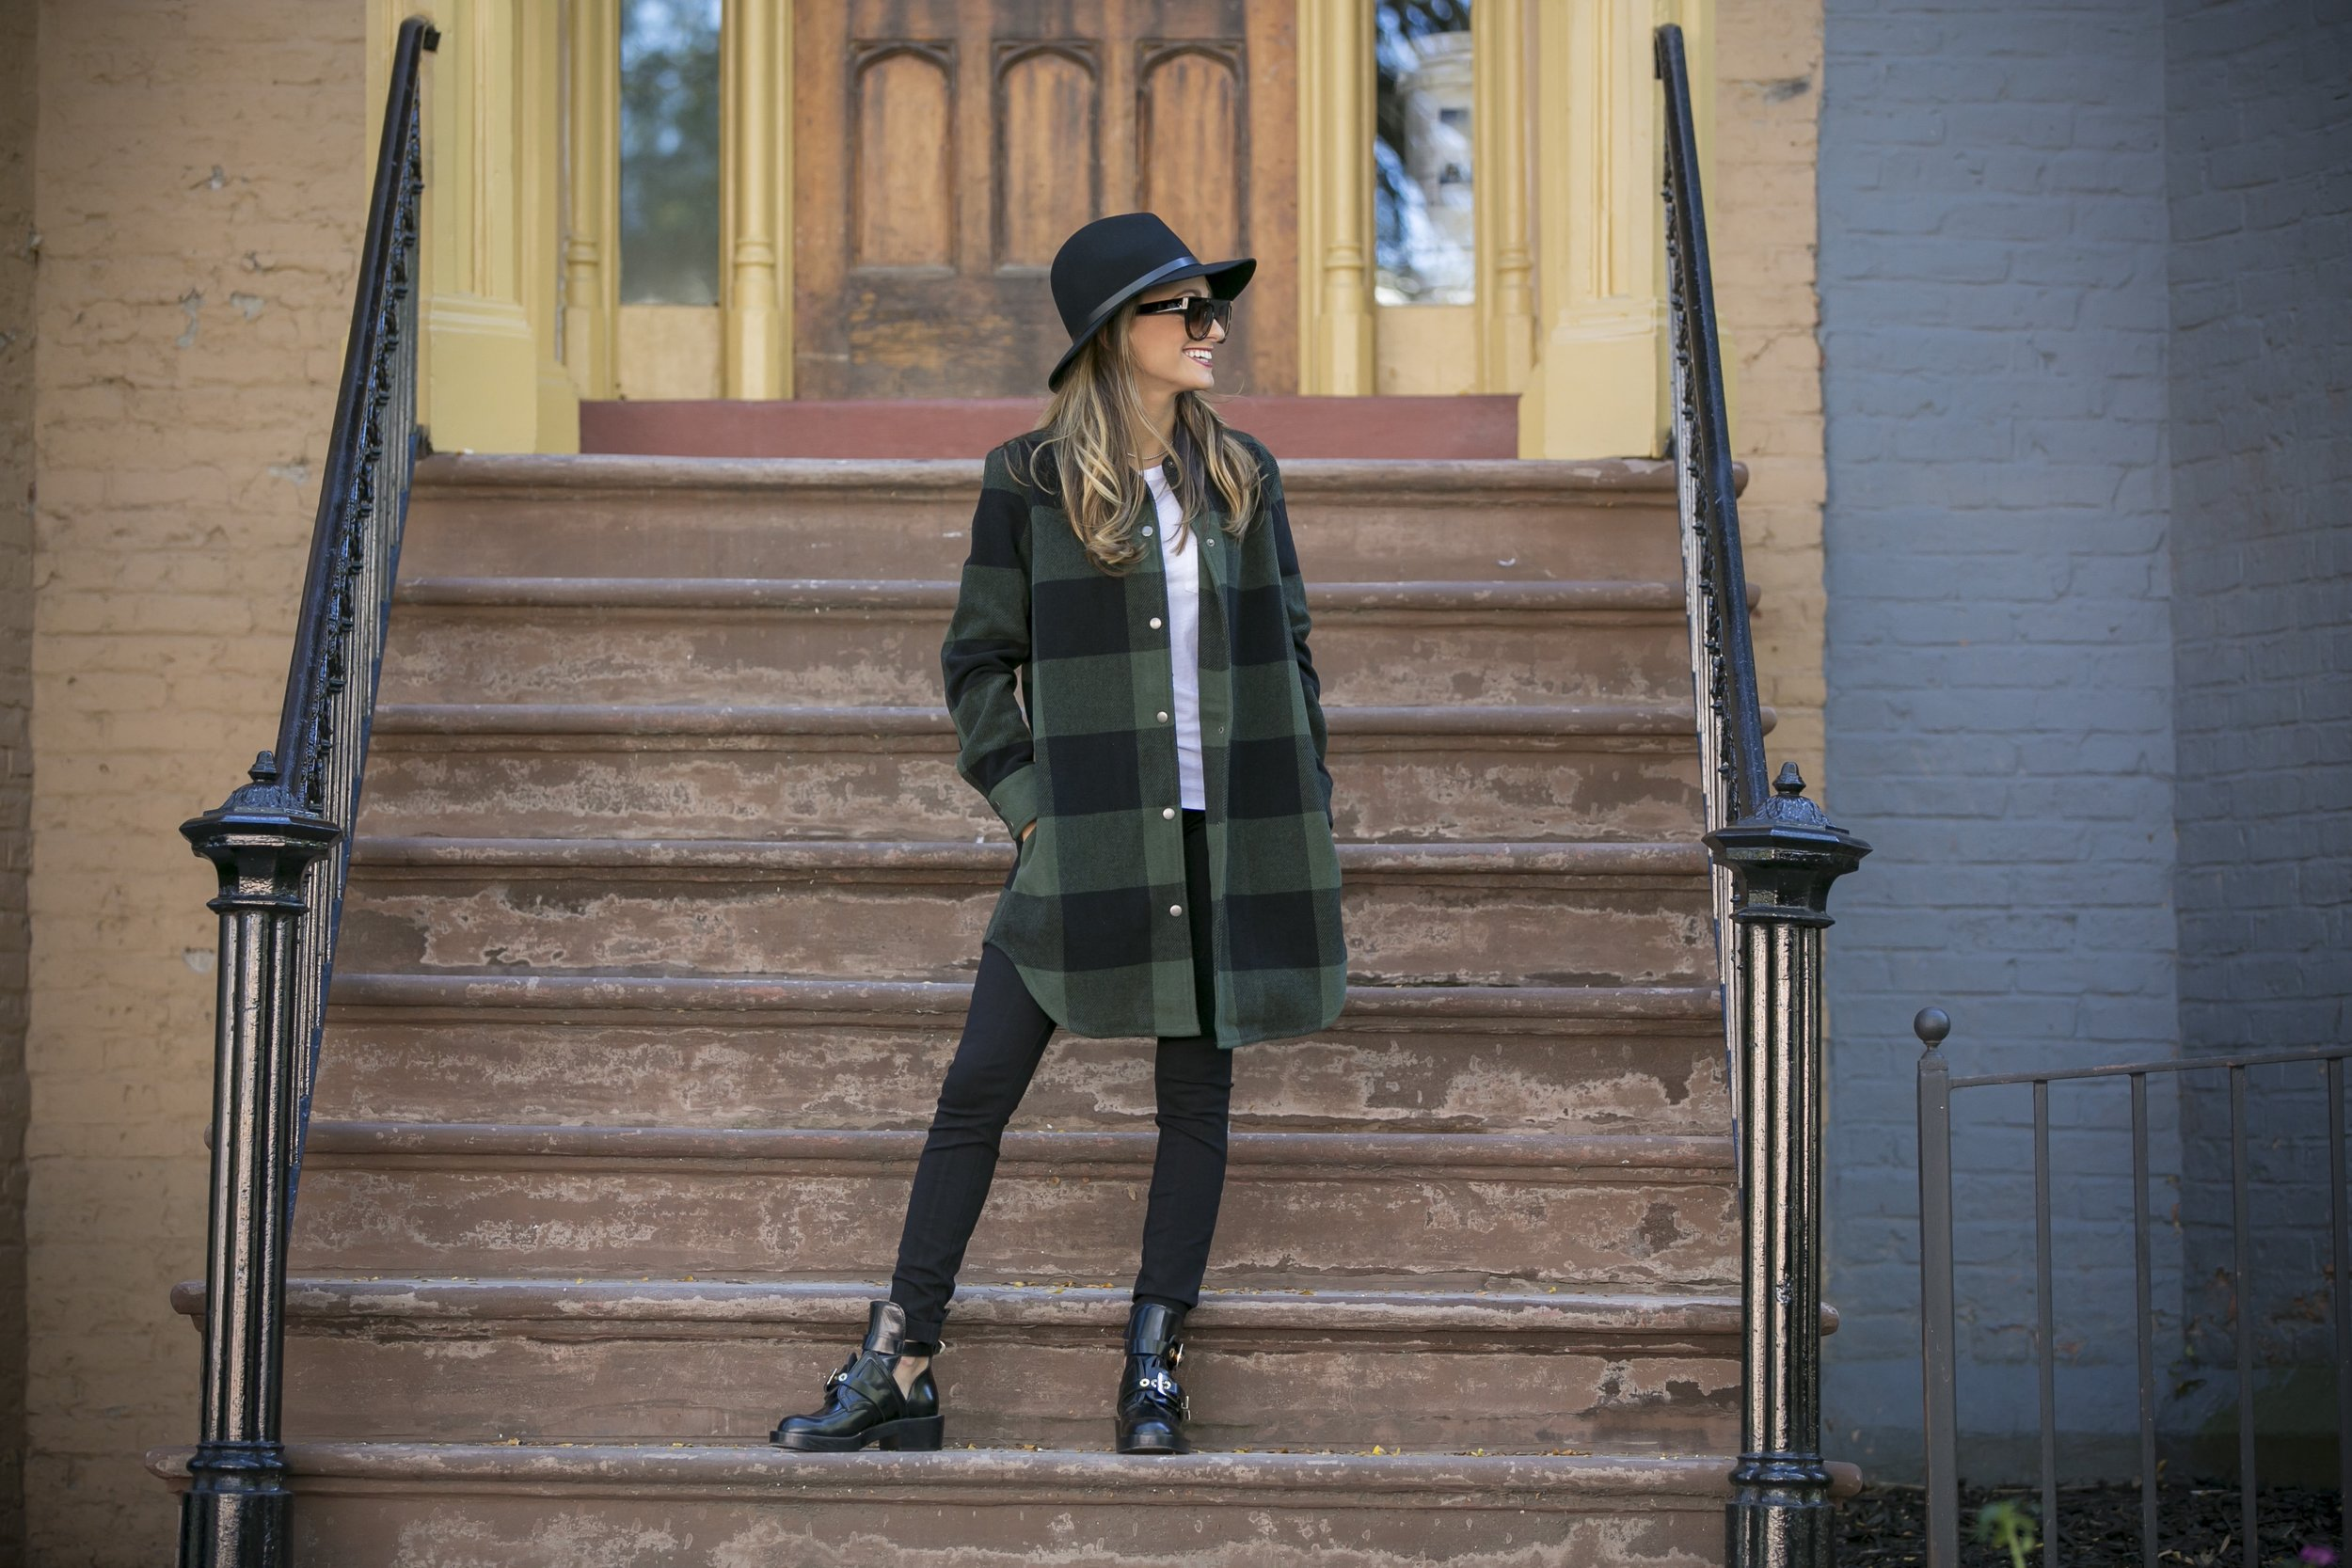 Tee: J.Crew |Jacket: BB Dakota |Leggings: J.Crew |Boots: Balenciaga |Hat: Rag and Bone     Dino Petrocelli Photography